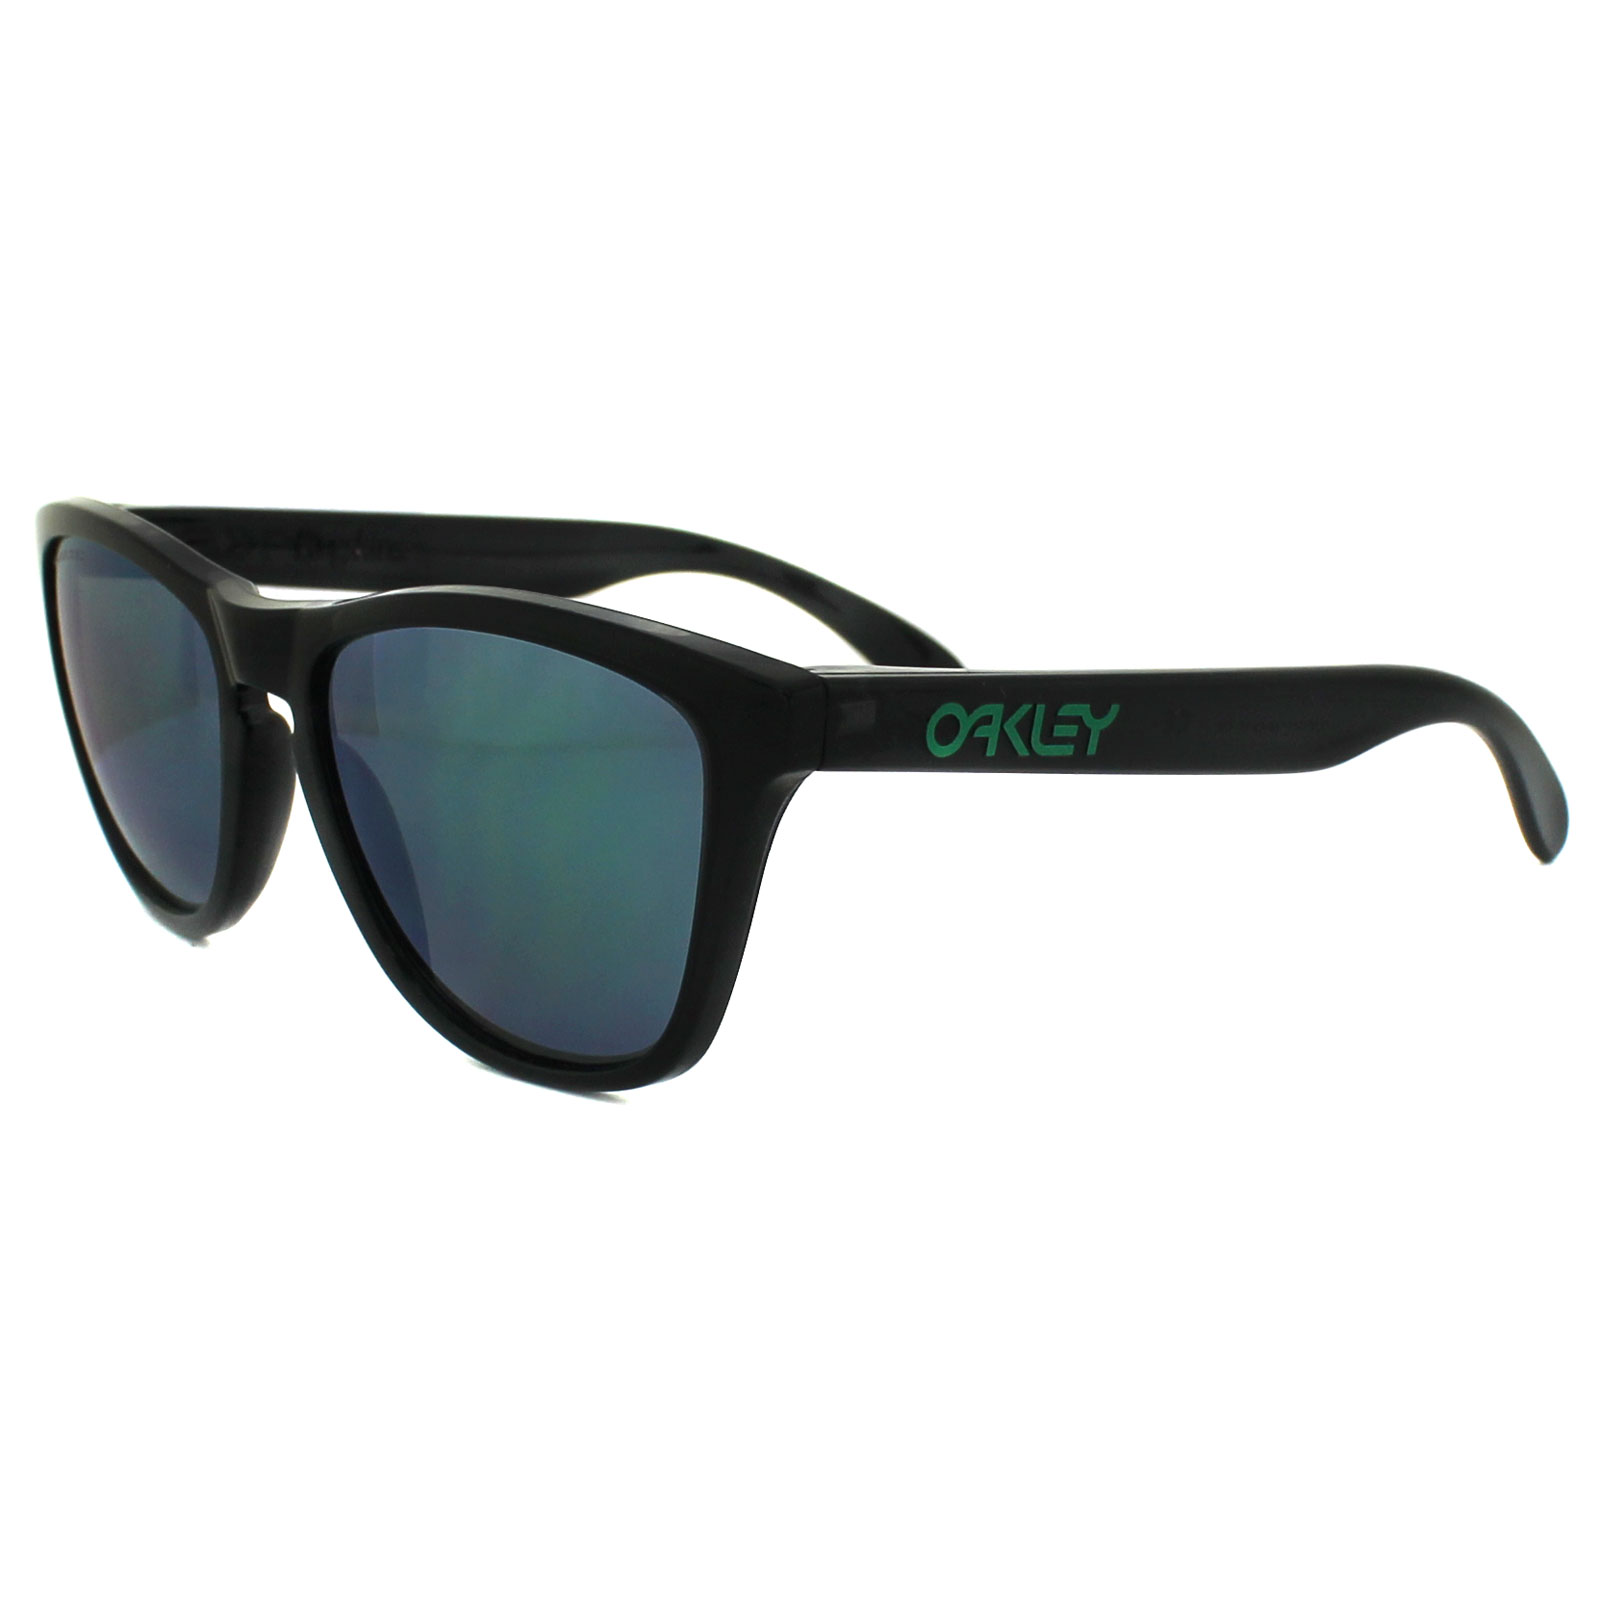 cool oakley sunglasses ulfg  Oakley Frogskins Sunglasses